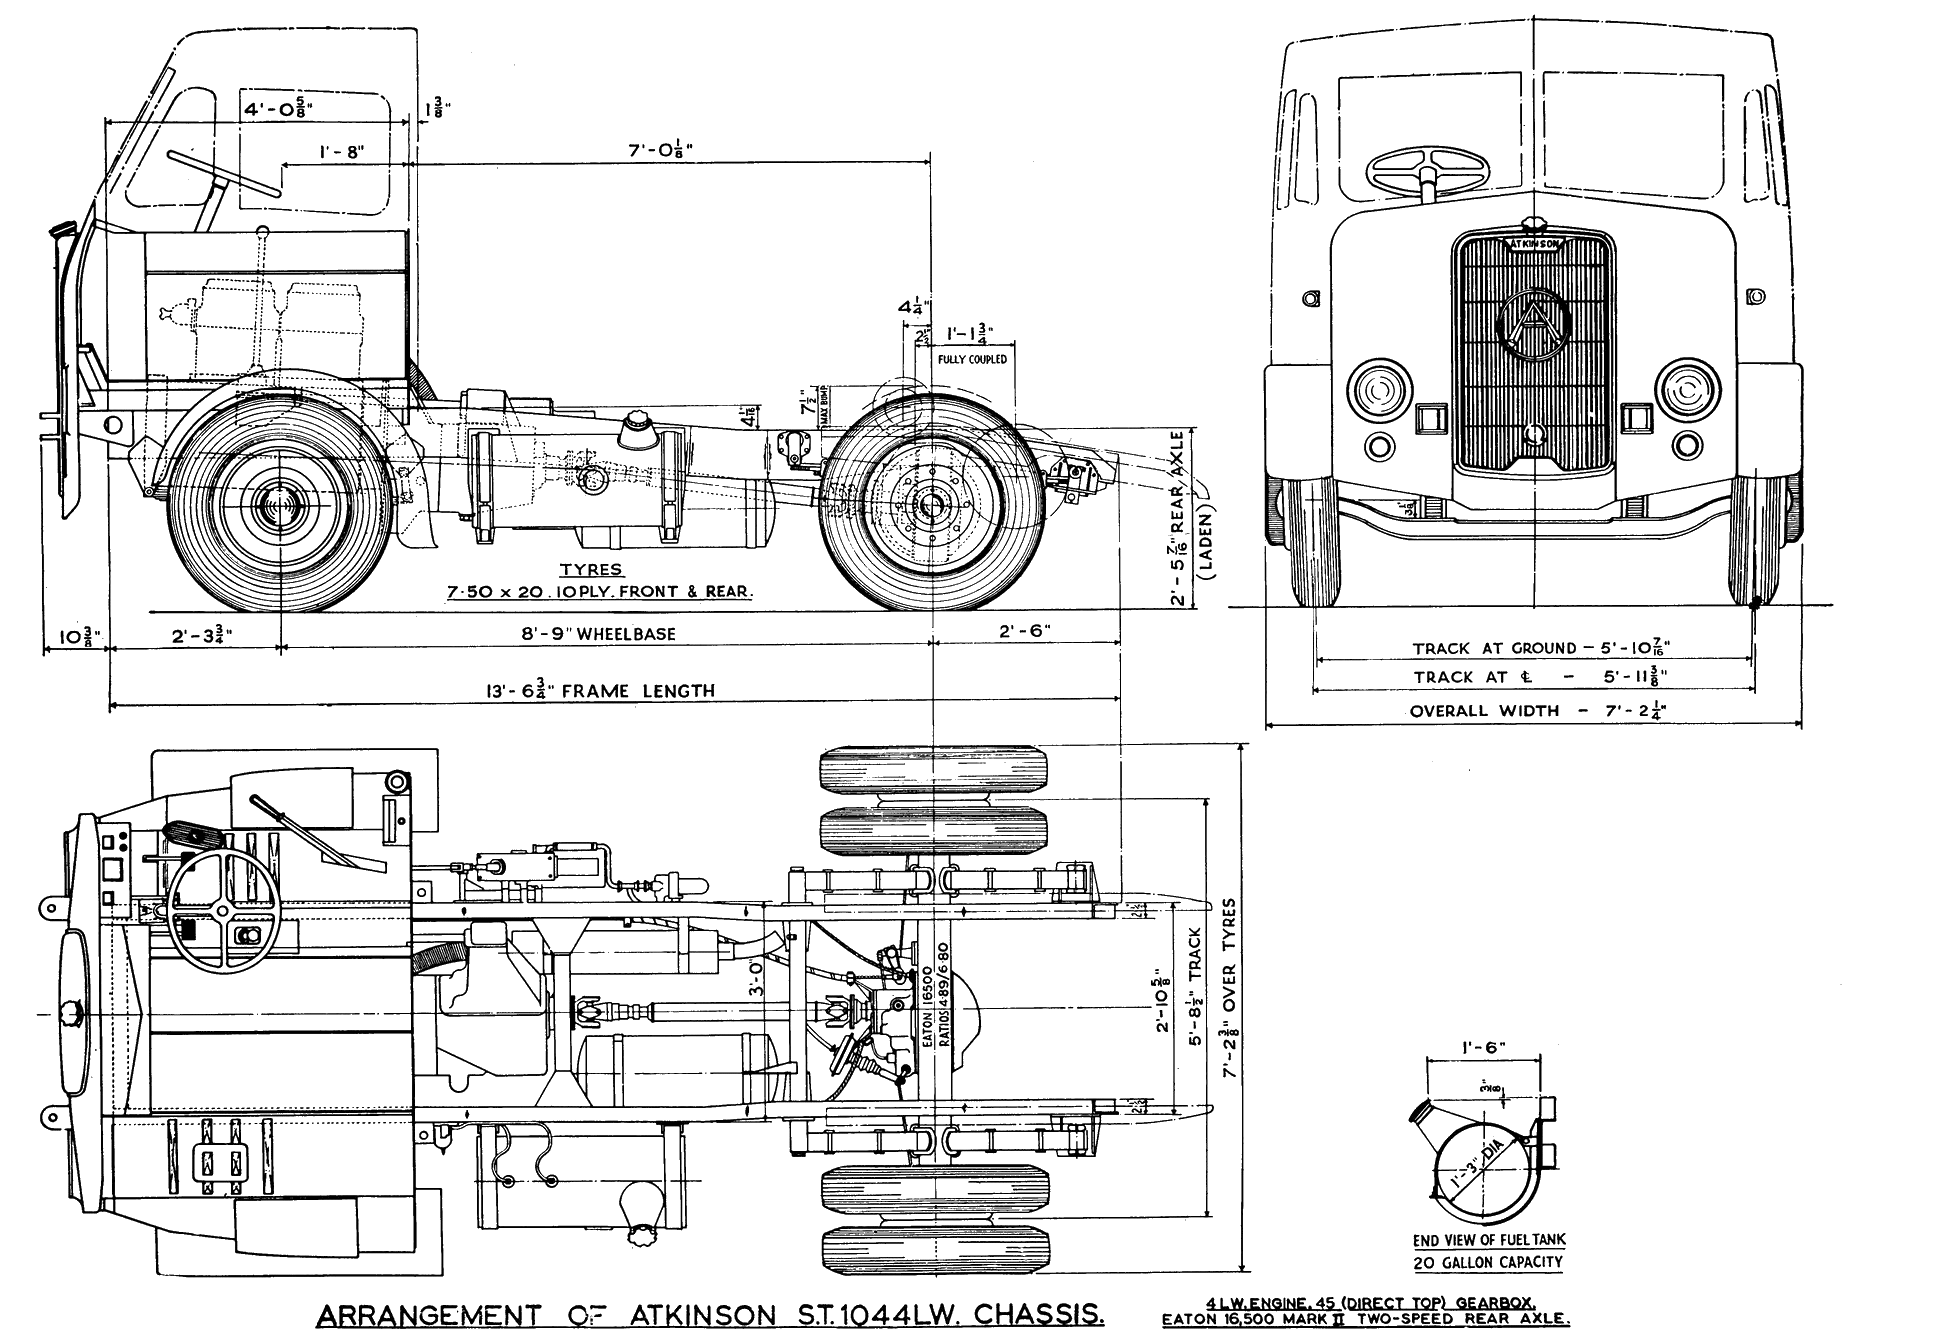 Atkinson ST1044LW blueprint